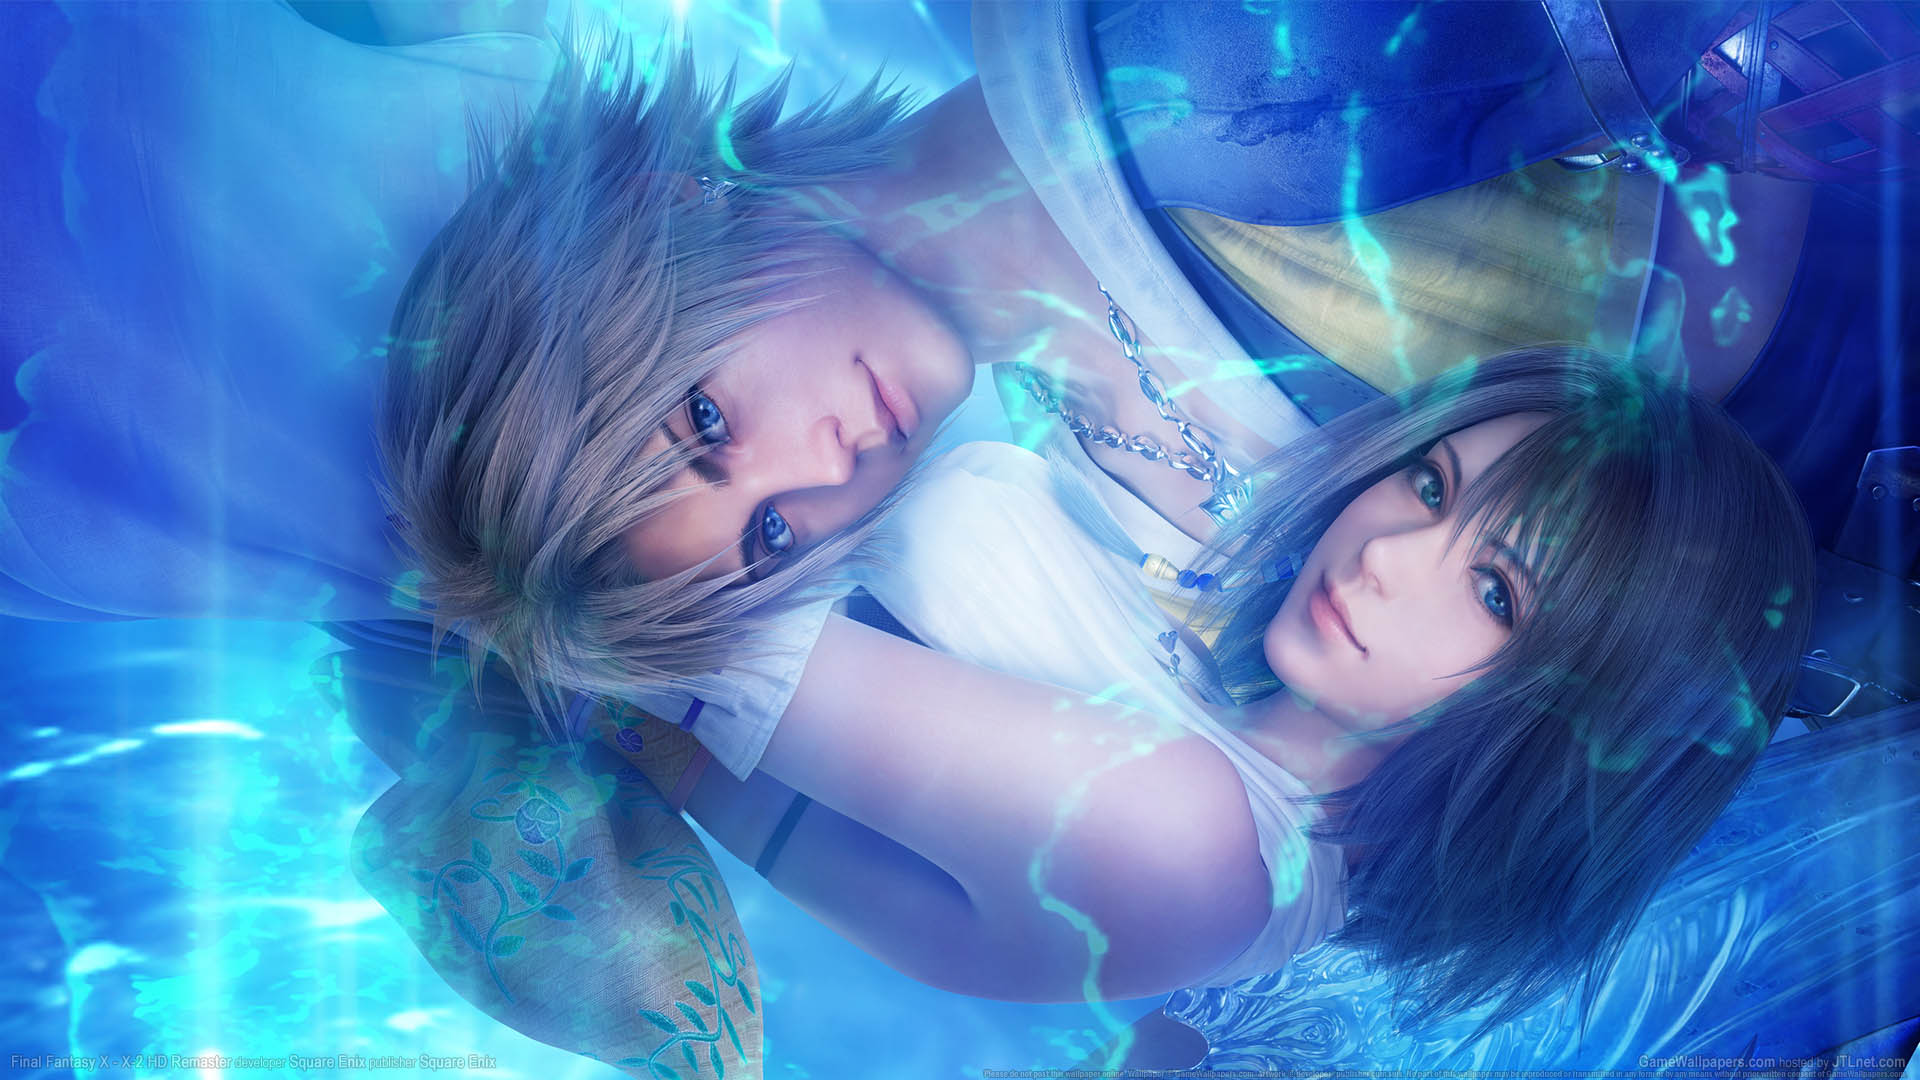 Final Fantasy X X 2 Hd Wallpaper 01 1920x1080